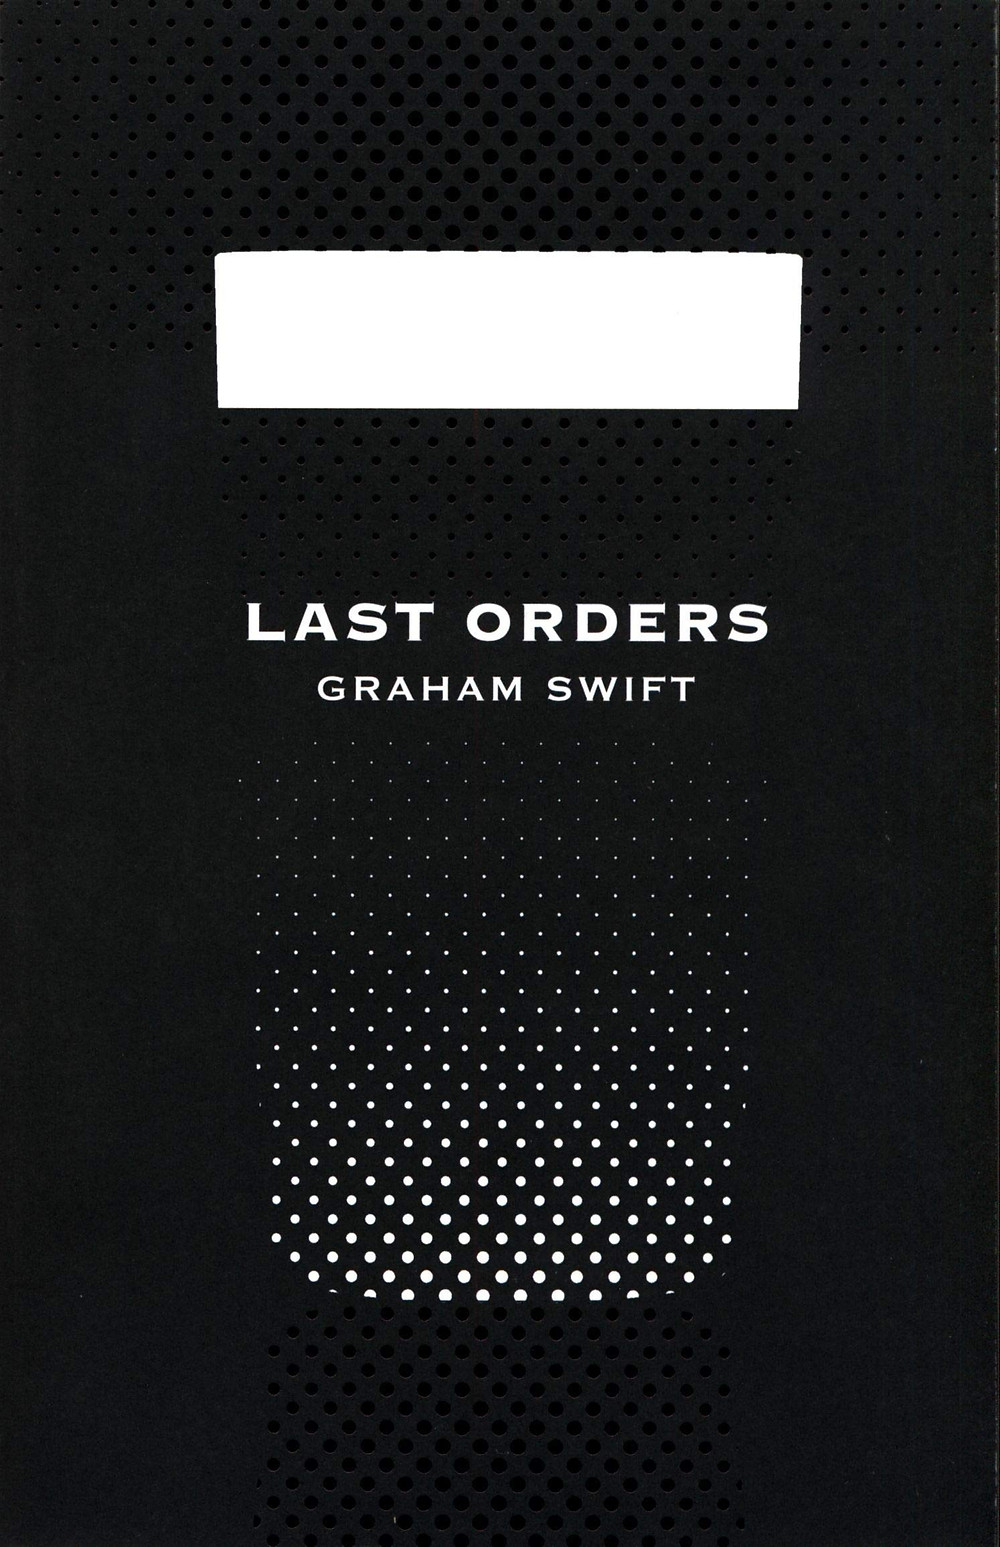 Last Orders - Graham Swift Book Cover